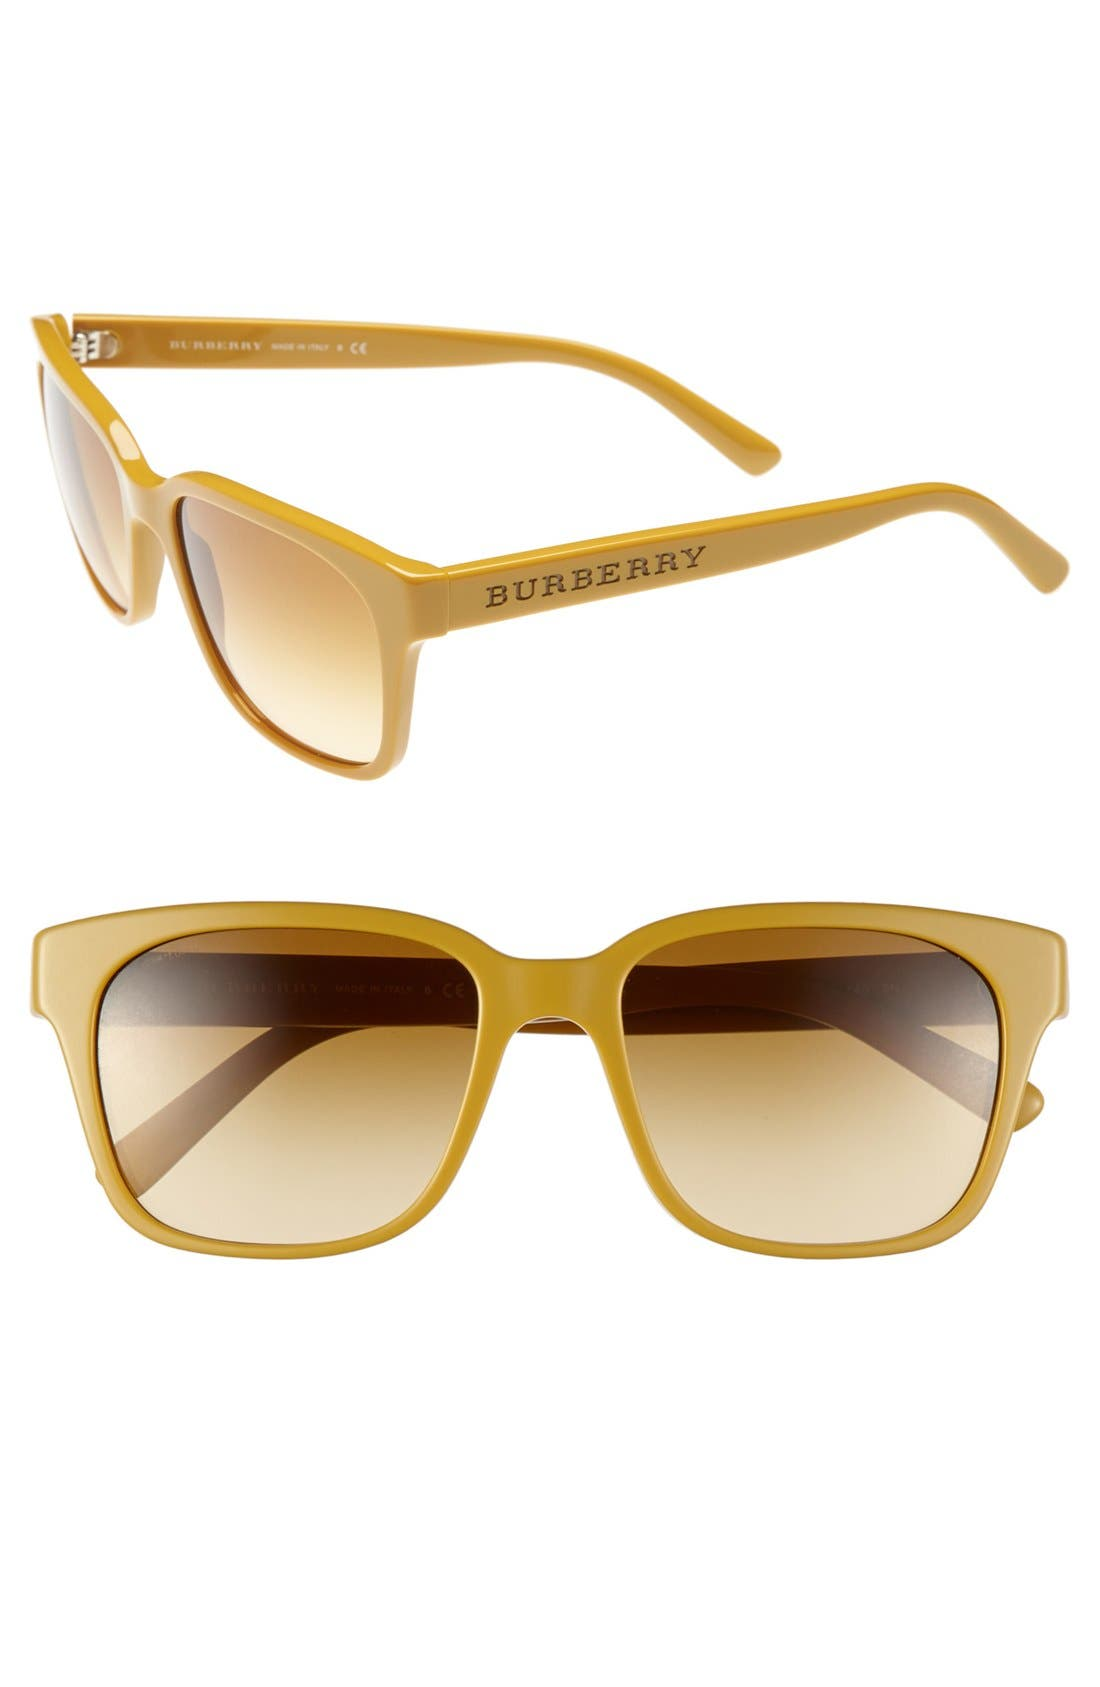 Main Image - Burberry 'Splash' 55mm Sunglasses